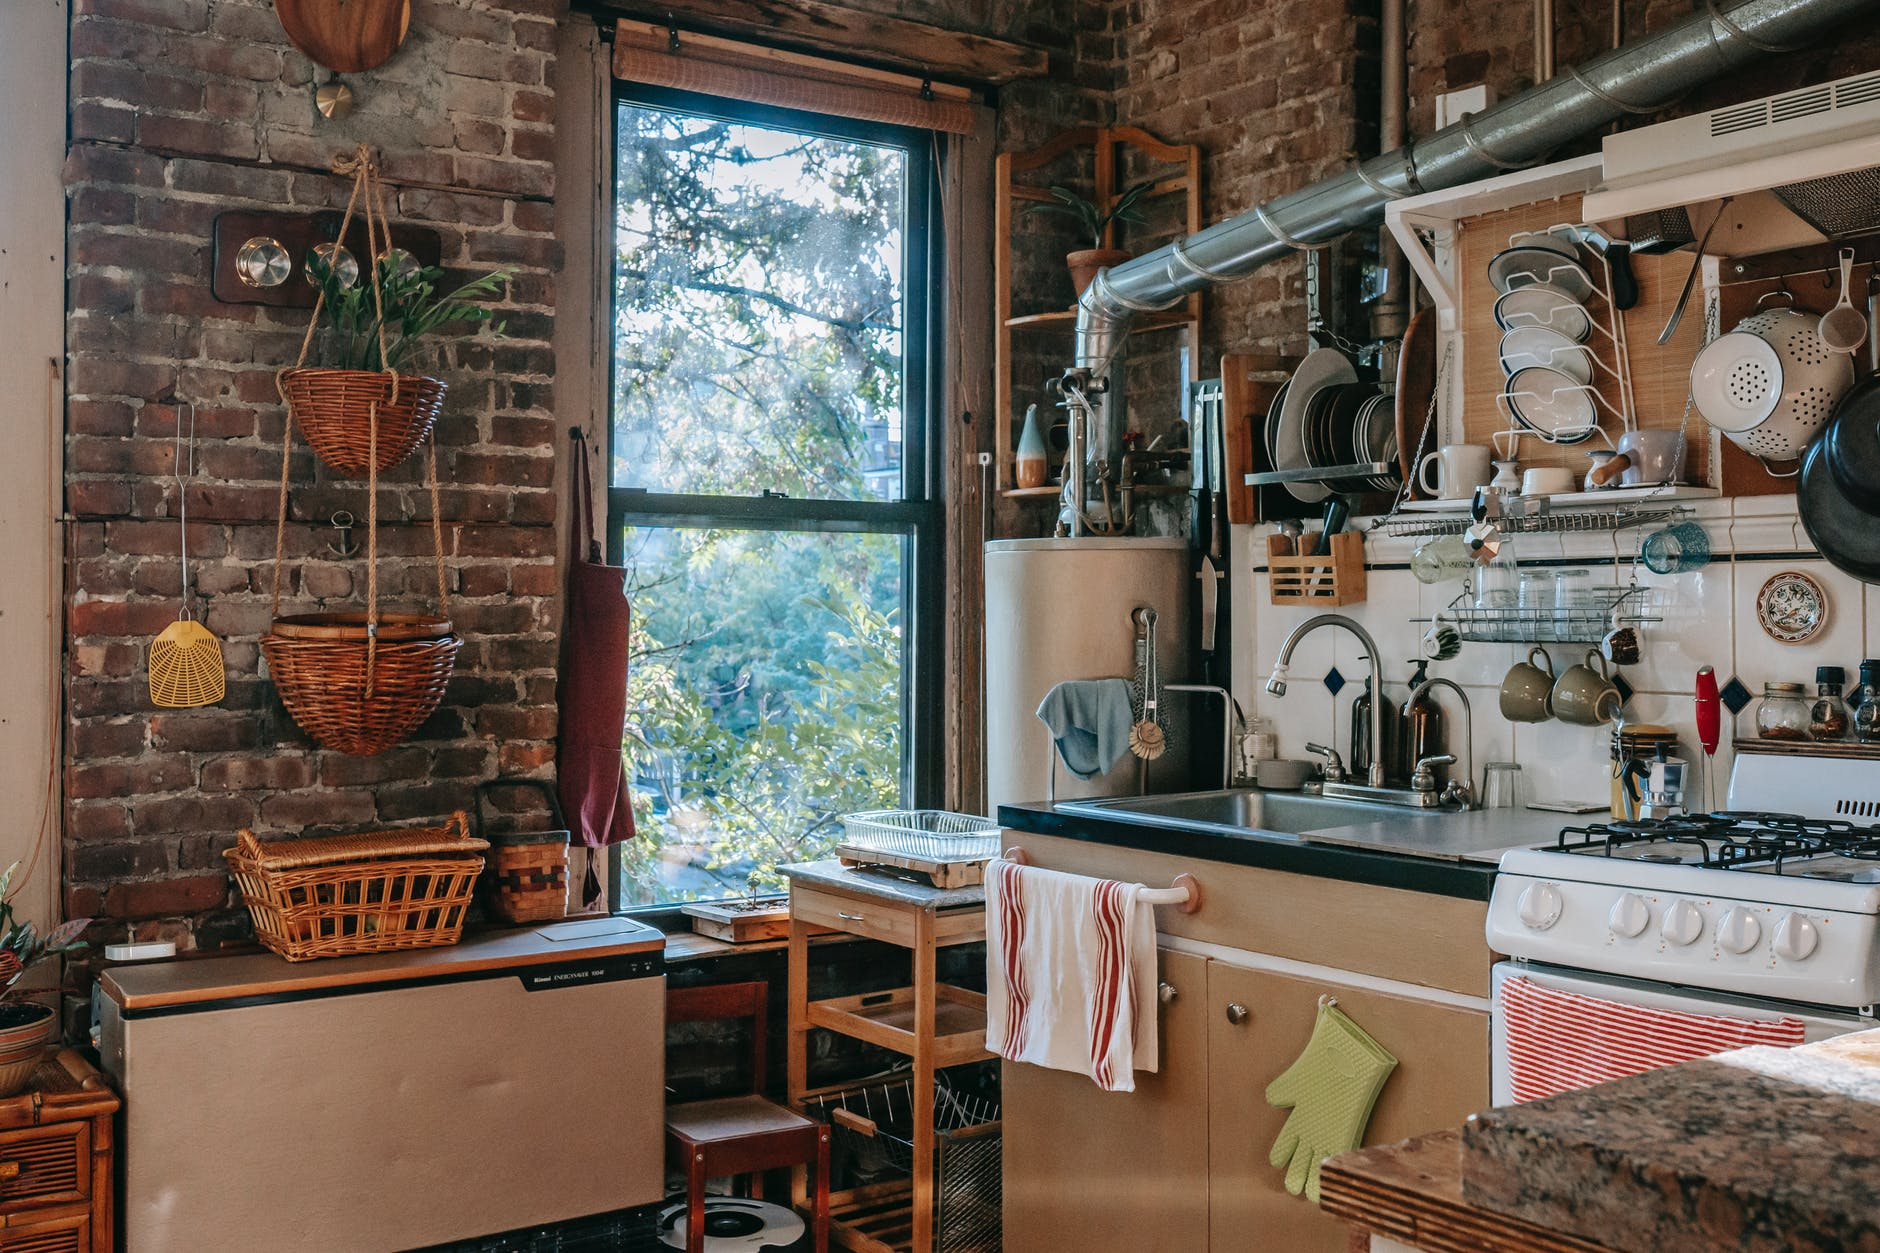 Old kitchen with many implements and a big window